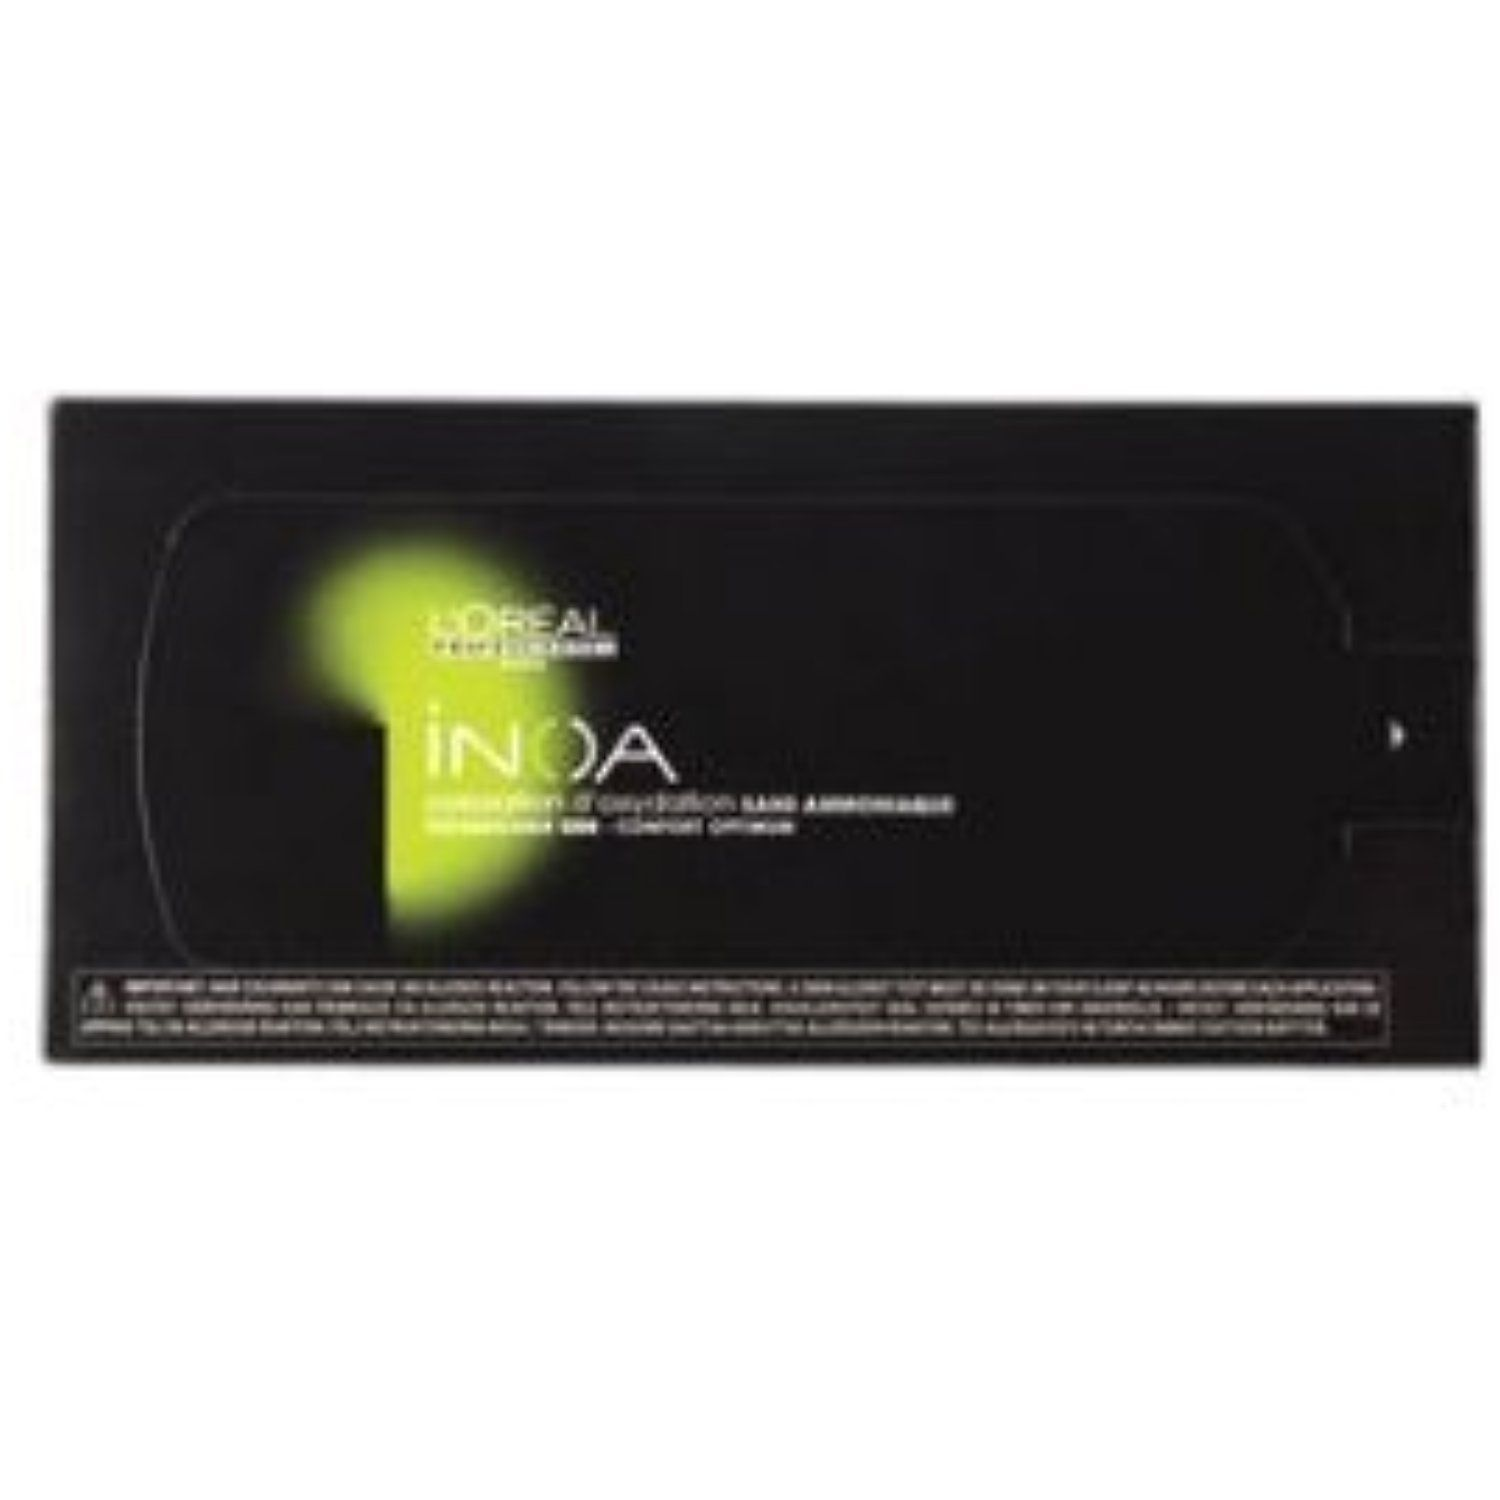 Inoa 7 43 7cg Ammonia Free Permanent Hair Color Ods2 Technology 2 1 Oz Find Out More About The Great Product At The Hair Color Permanent Hair Color Loreal